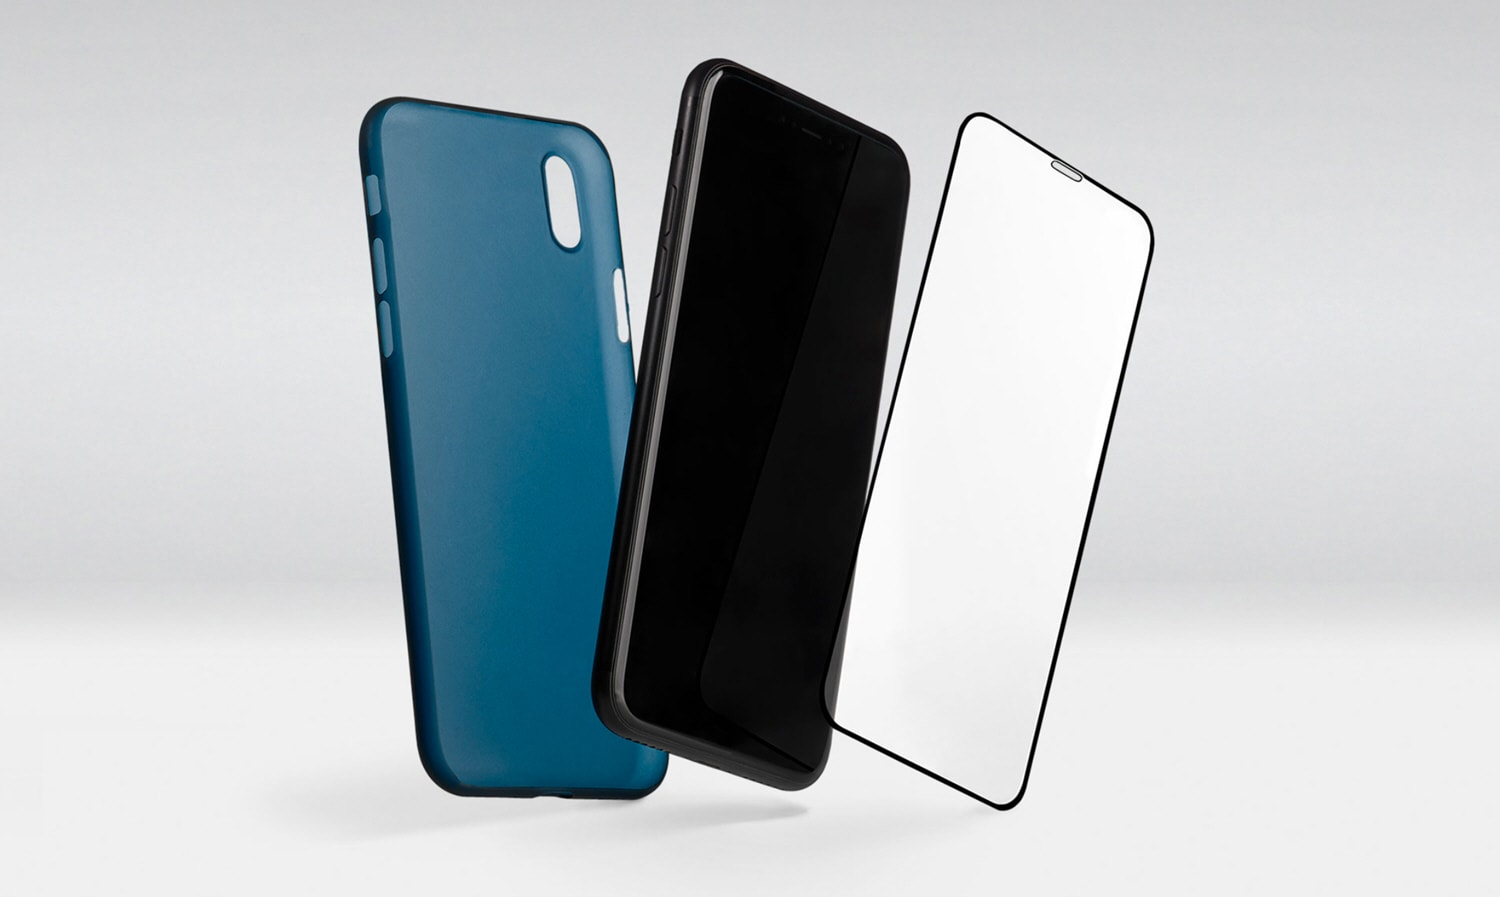 Protecting your iPhone with Totallee case & tempered glass